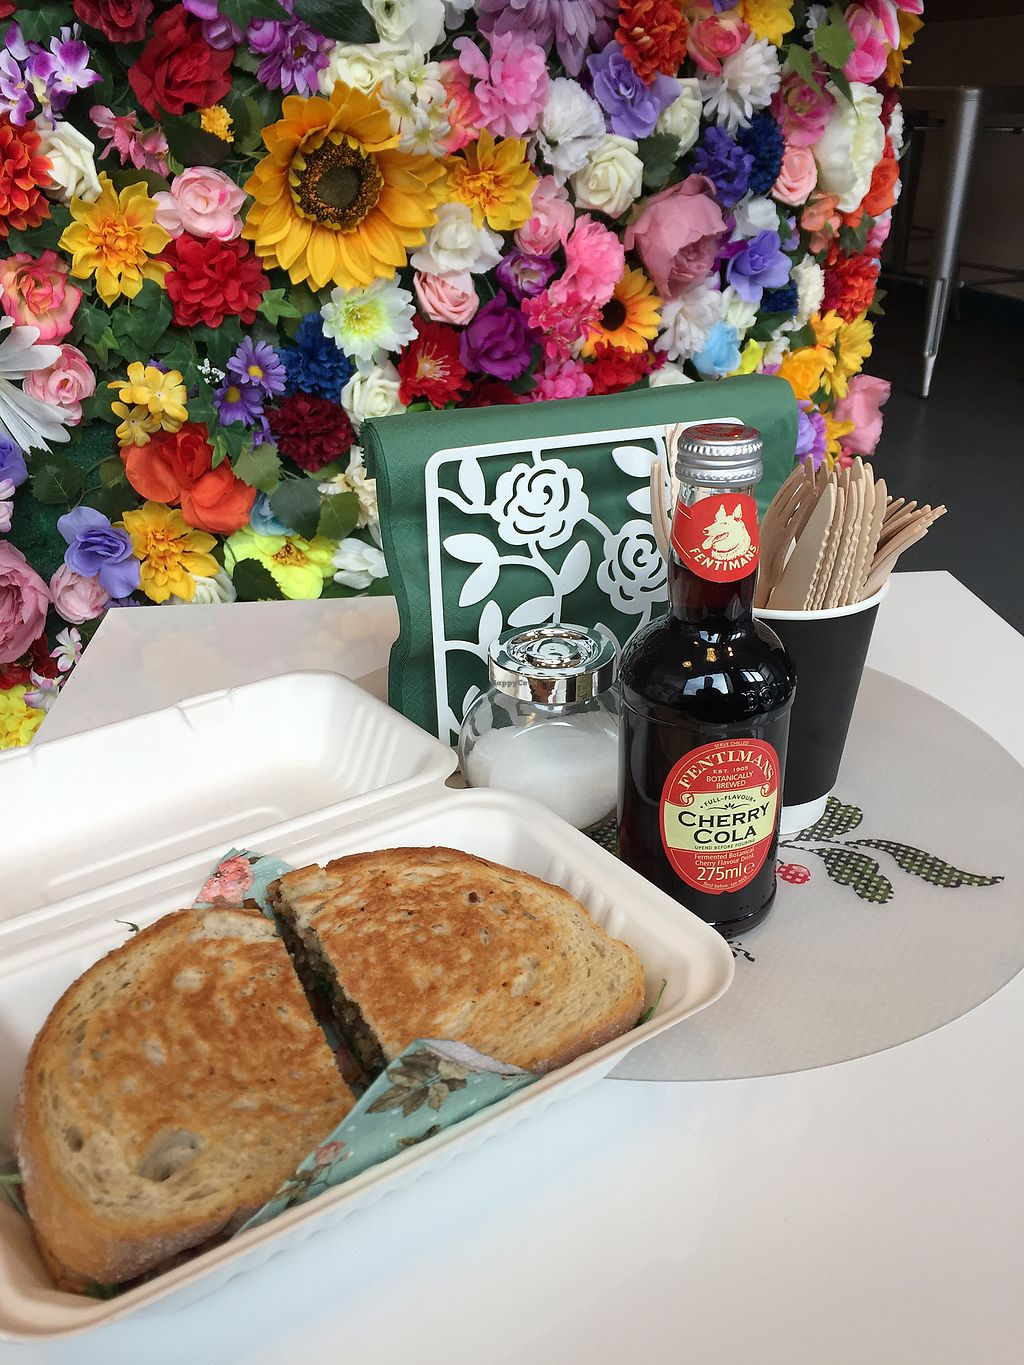 """Photo of In Bloom  by <a href=""""/members/profile/blackoutrishi"""">blackoutrishi</a> <br/>Vegan haggis and cheese sandwich  <br/> November 23, 2017  - <a href='/contact/abuse/image/96713/328492'>Report</a>"""